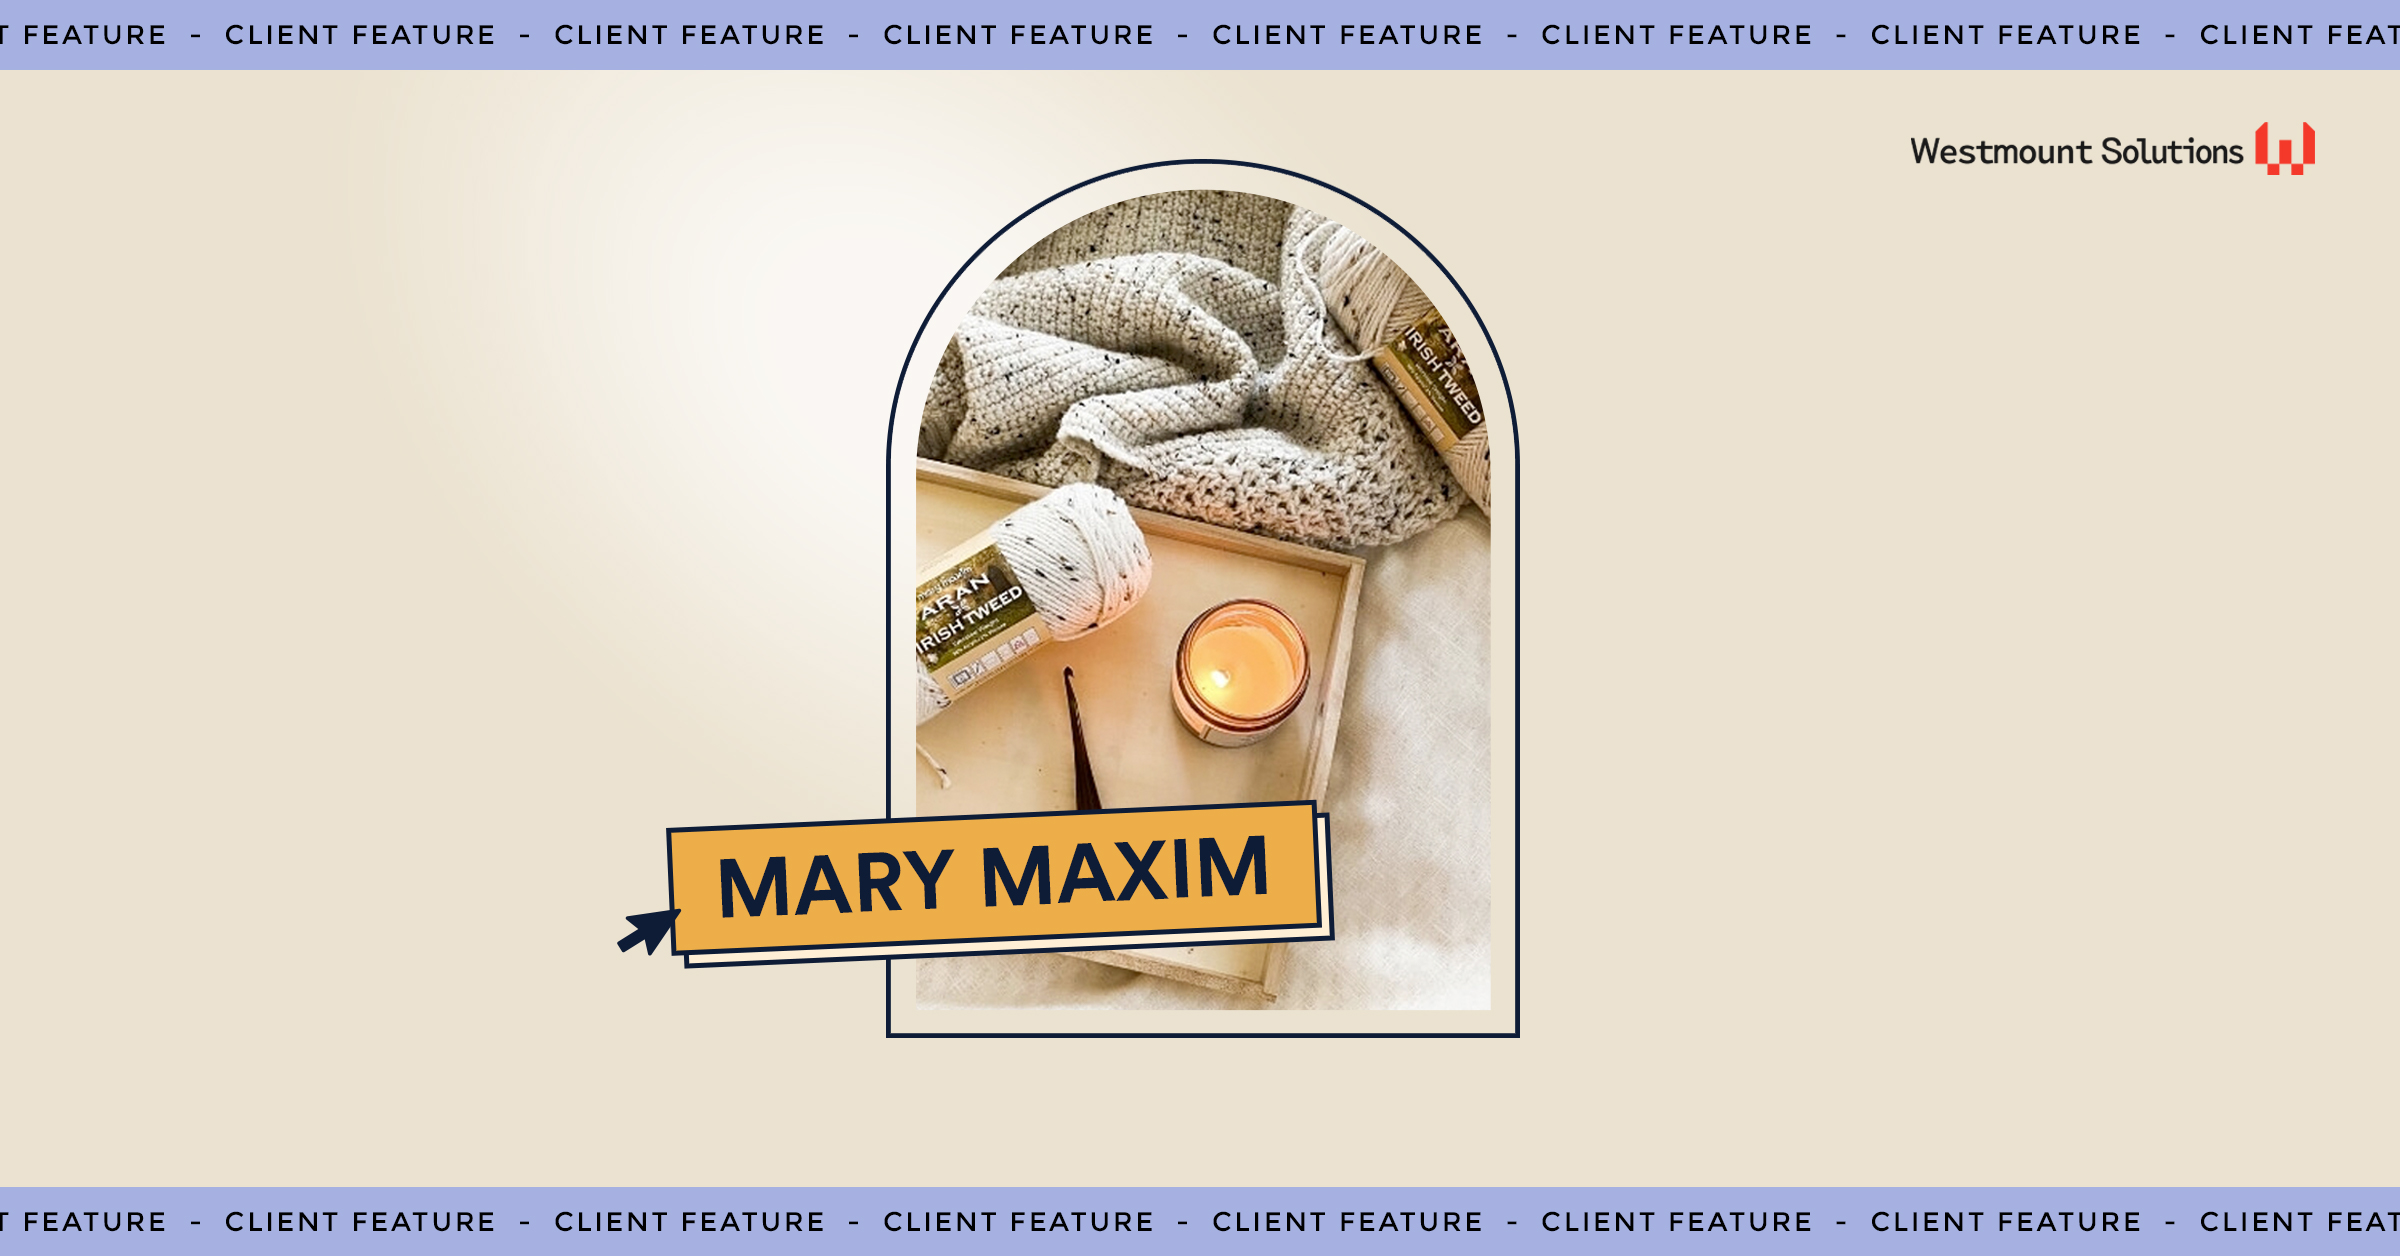 This is an image of Mary Maxim